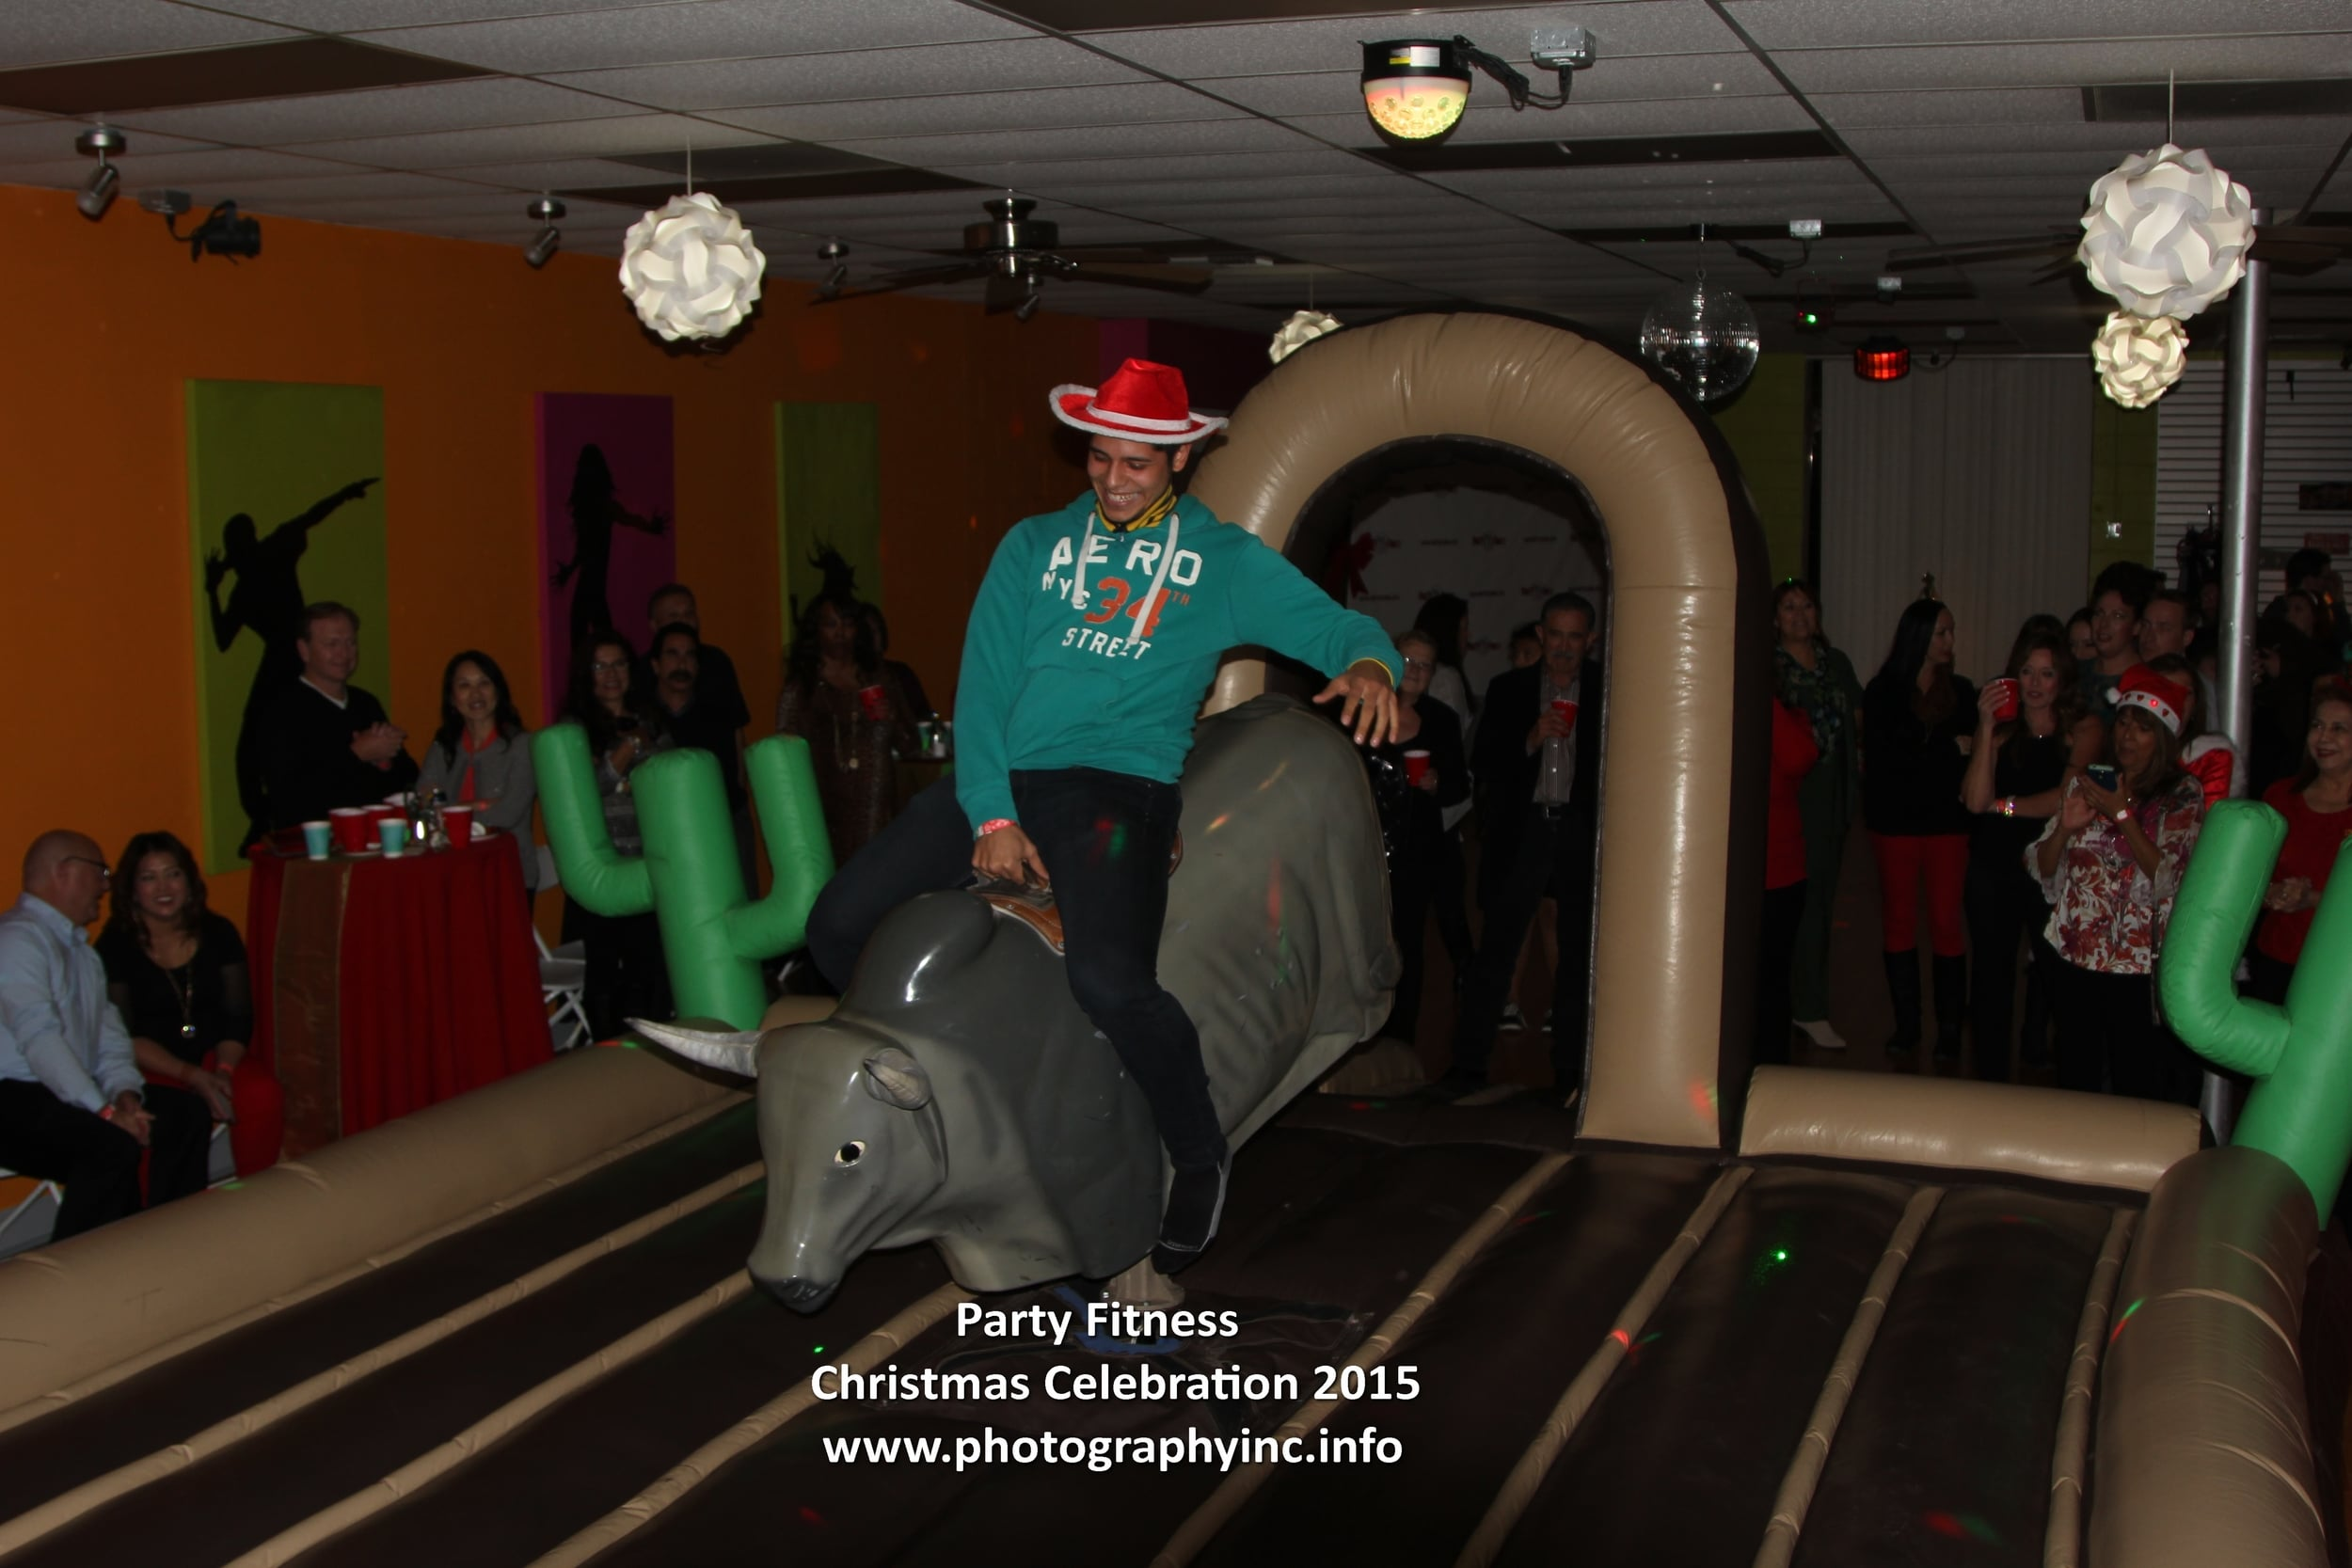 Party Fitness Christmas Party 2015